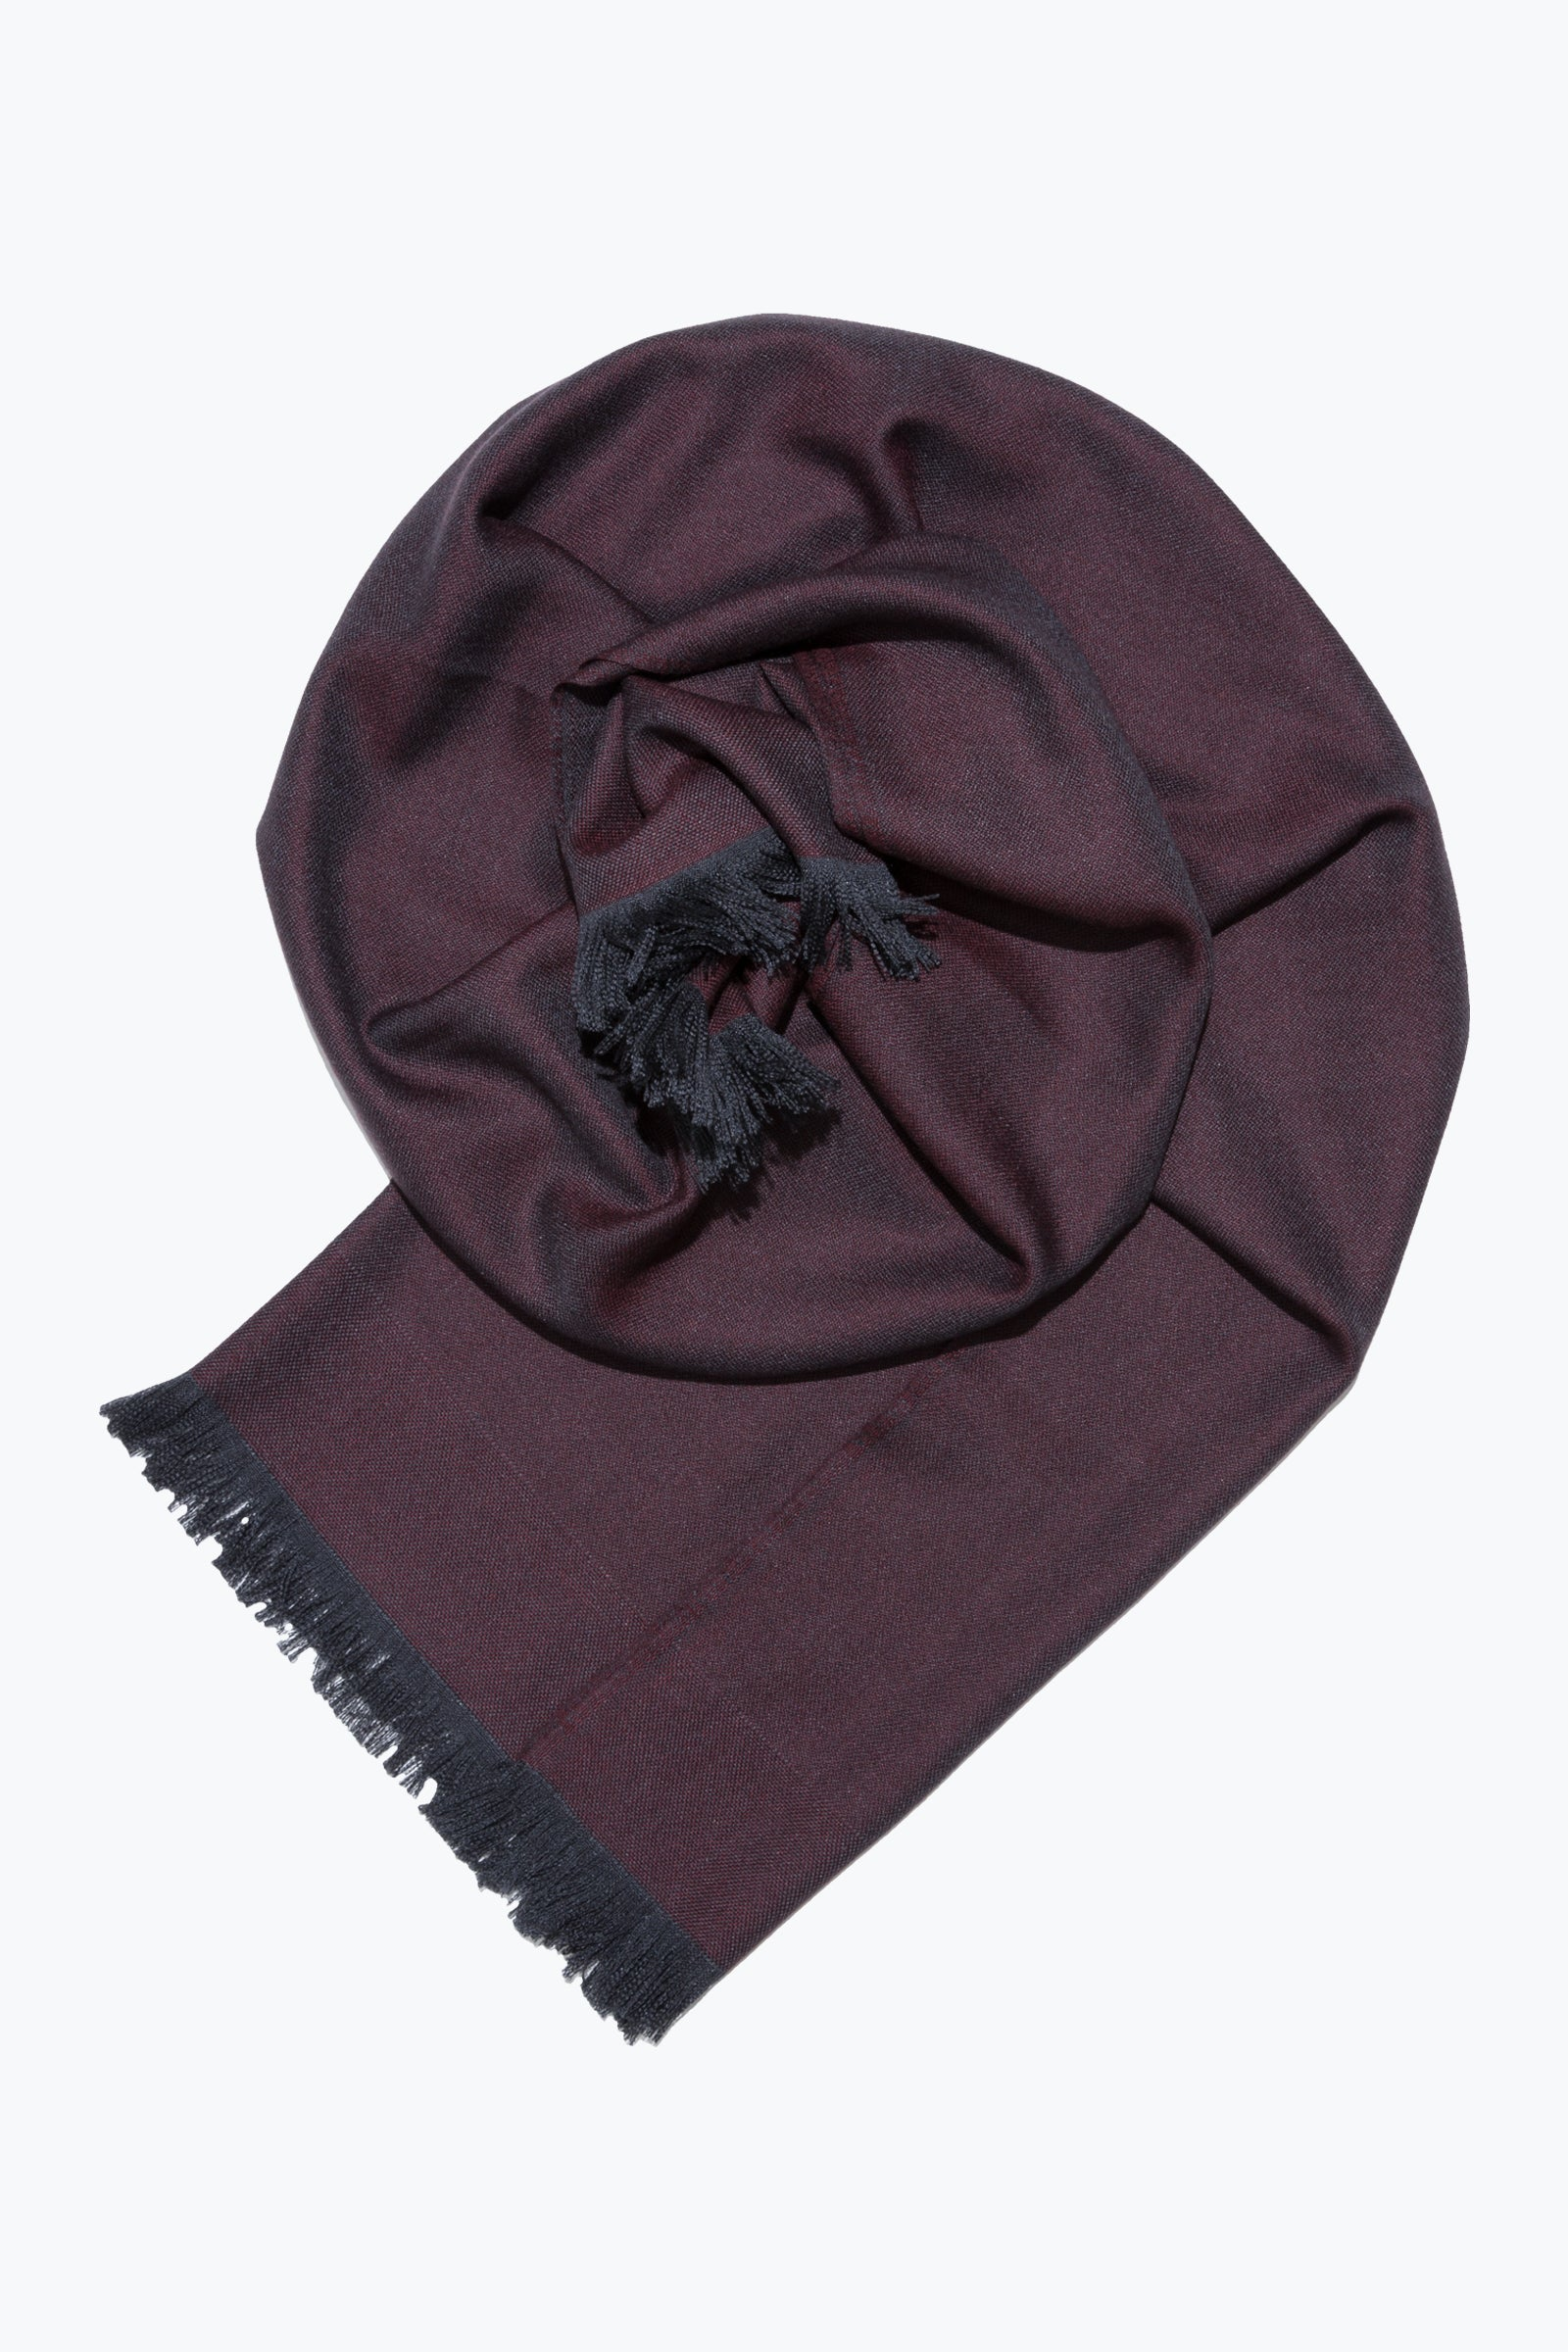 woven shawl scarf - solid with border (wine)